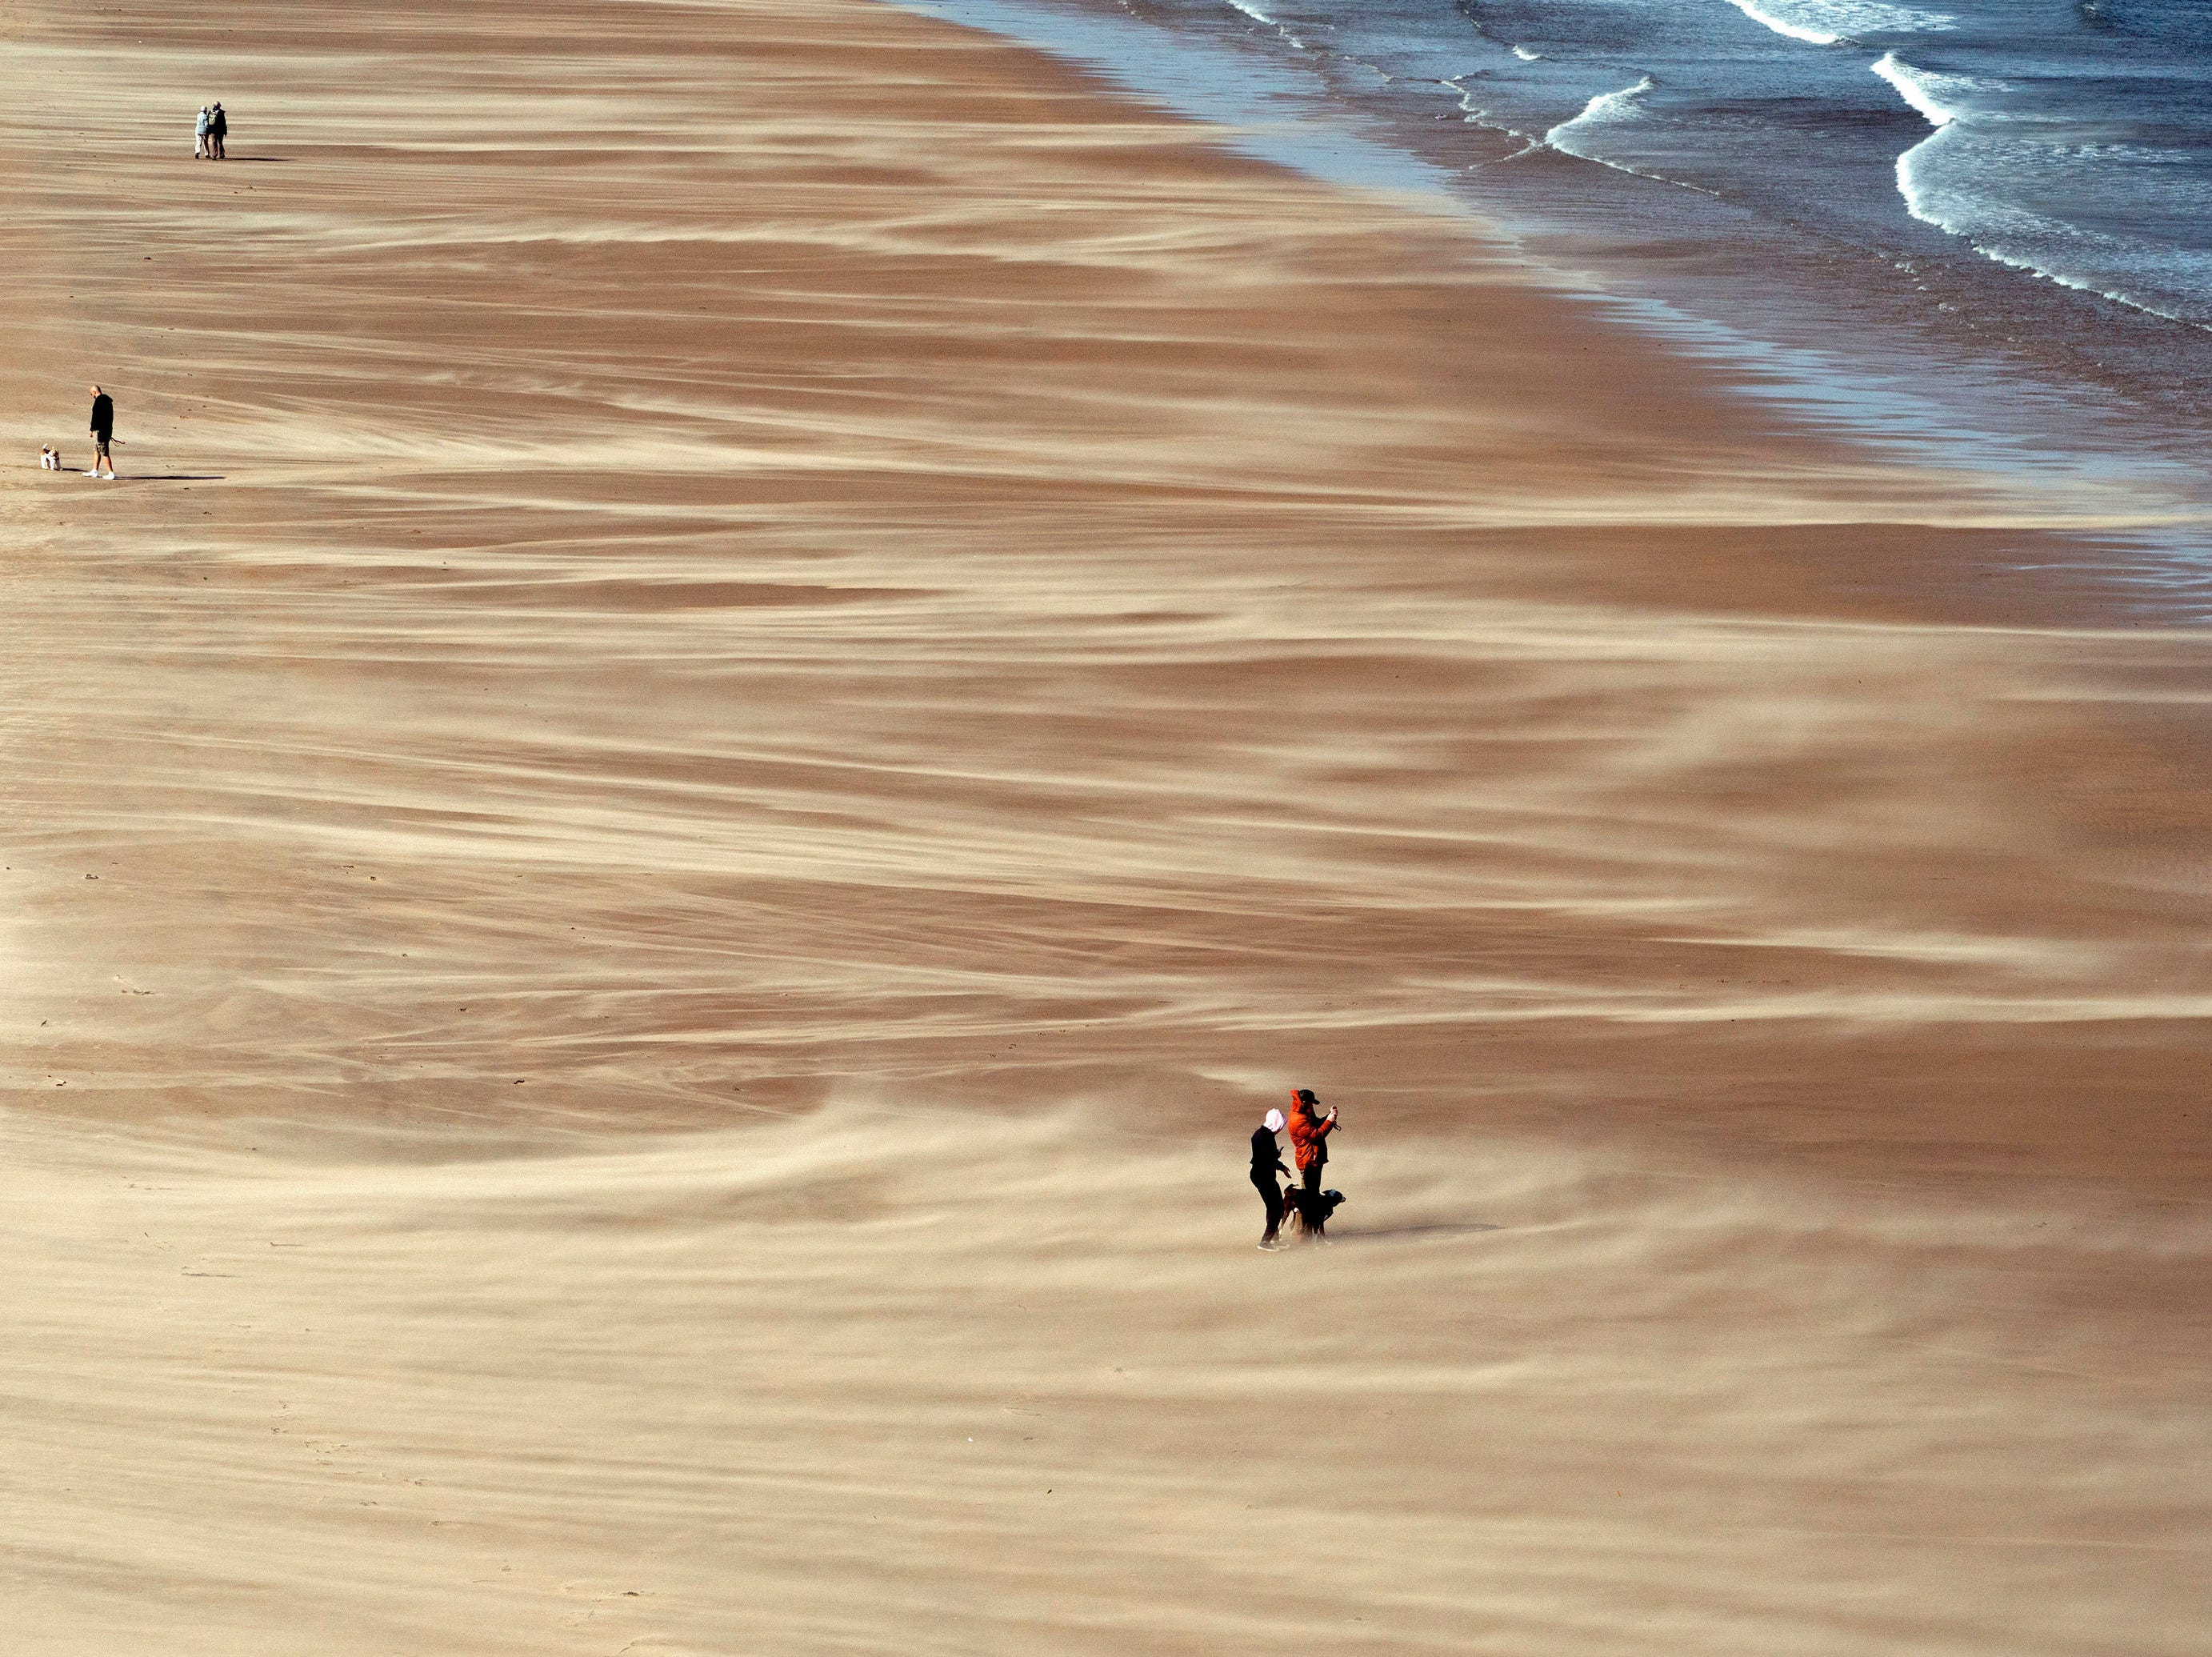 People walk along Tynemouth Beach on the northeast coast of England, as forecasters warn about strong storm winds across the region on Wednesday Sept. 19, 2018.  An amber warning was issued, covering Northern Ireland and northern parts of England and Scotland.